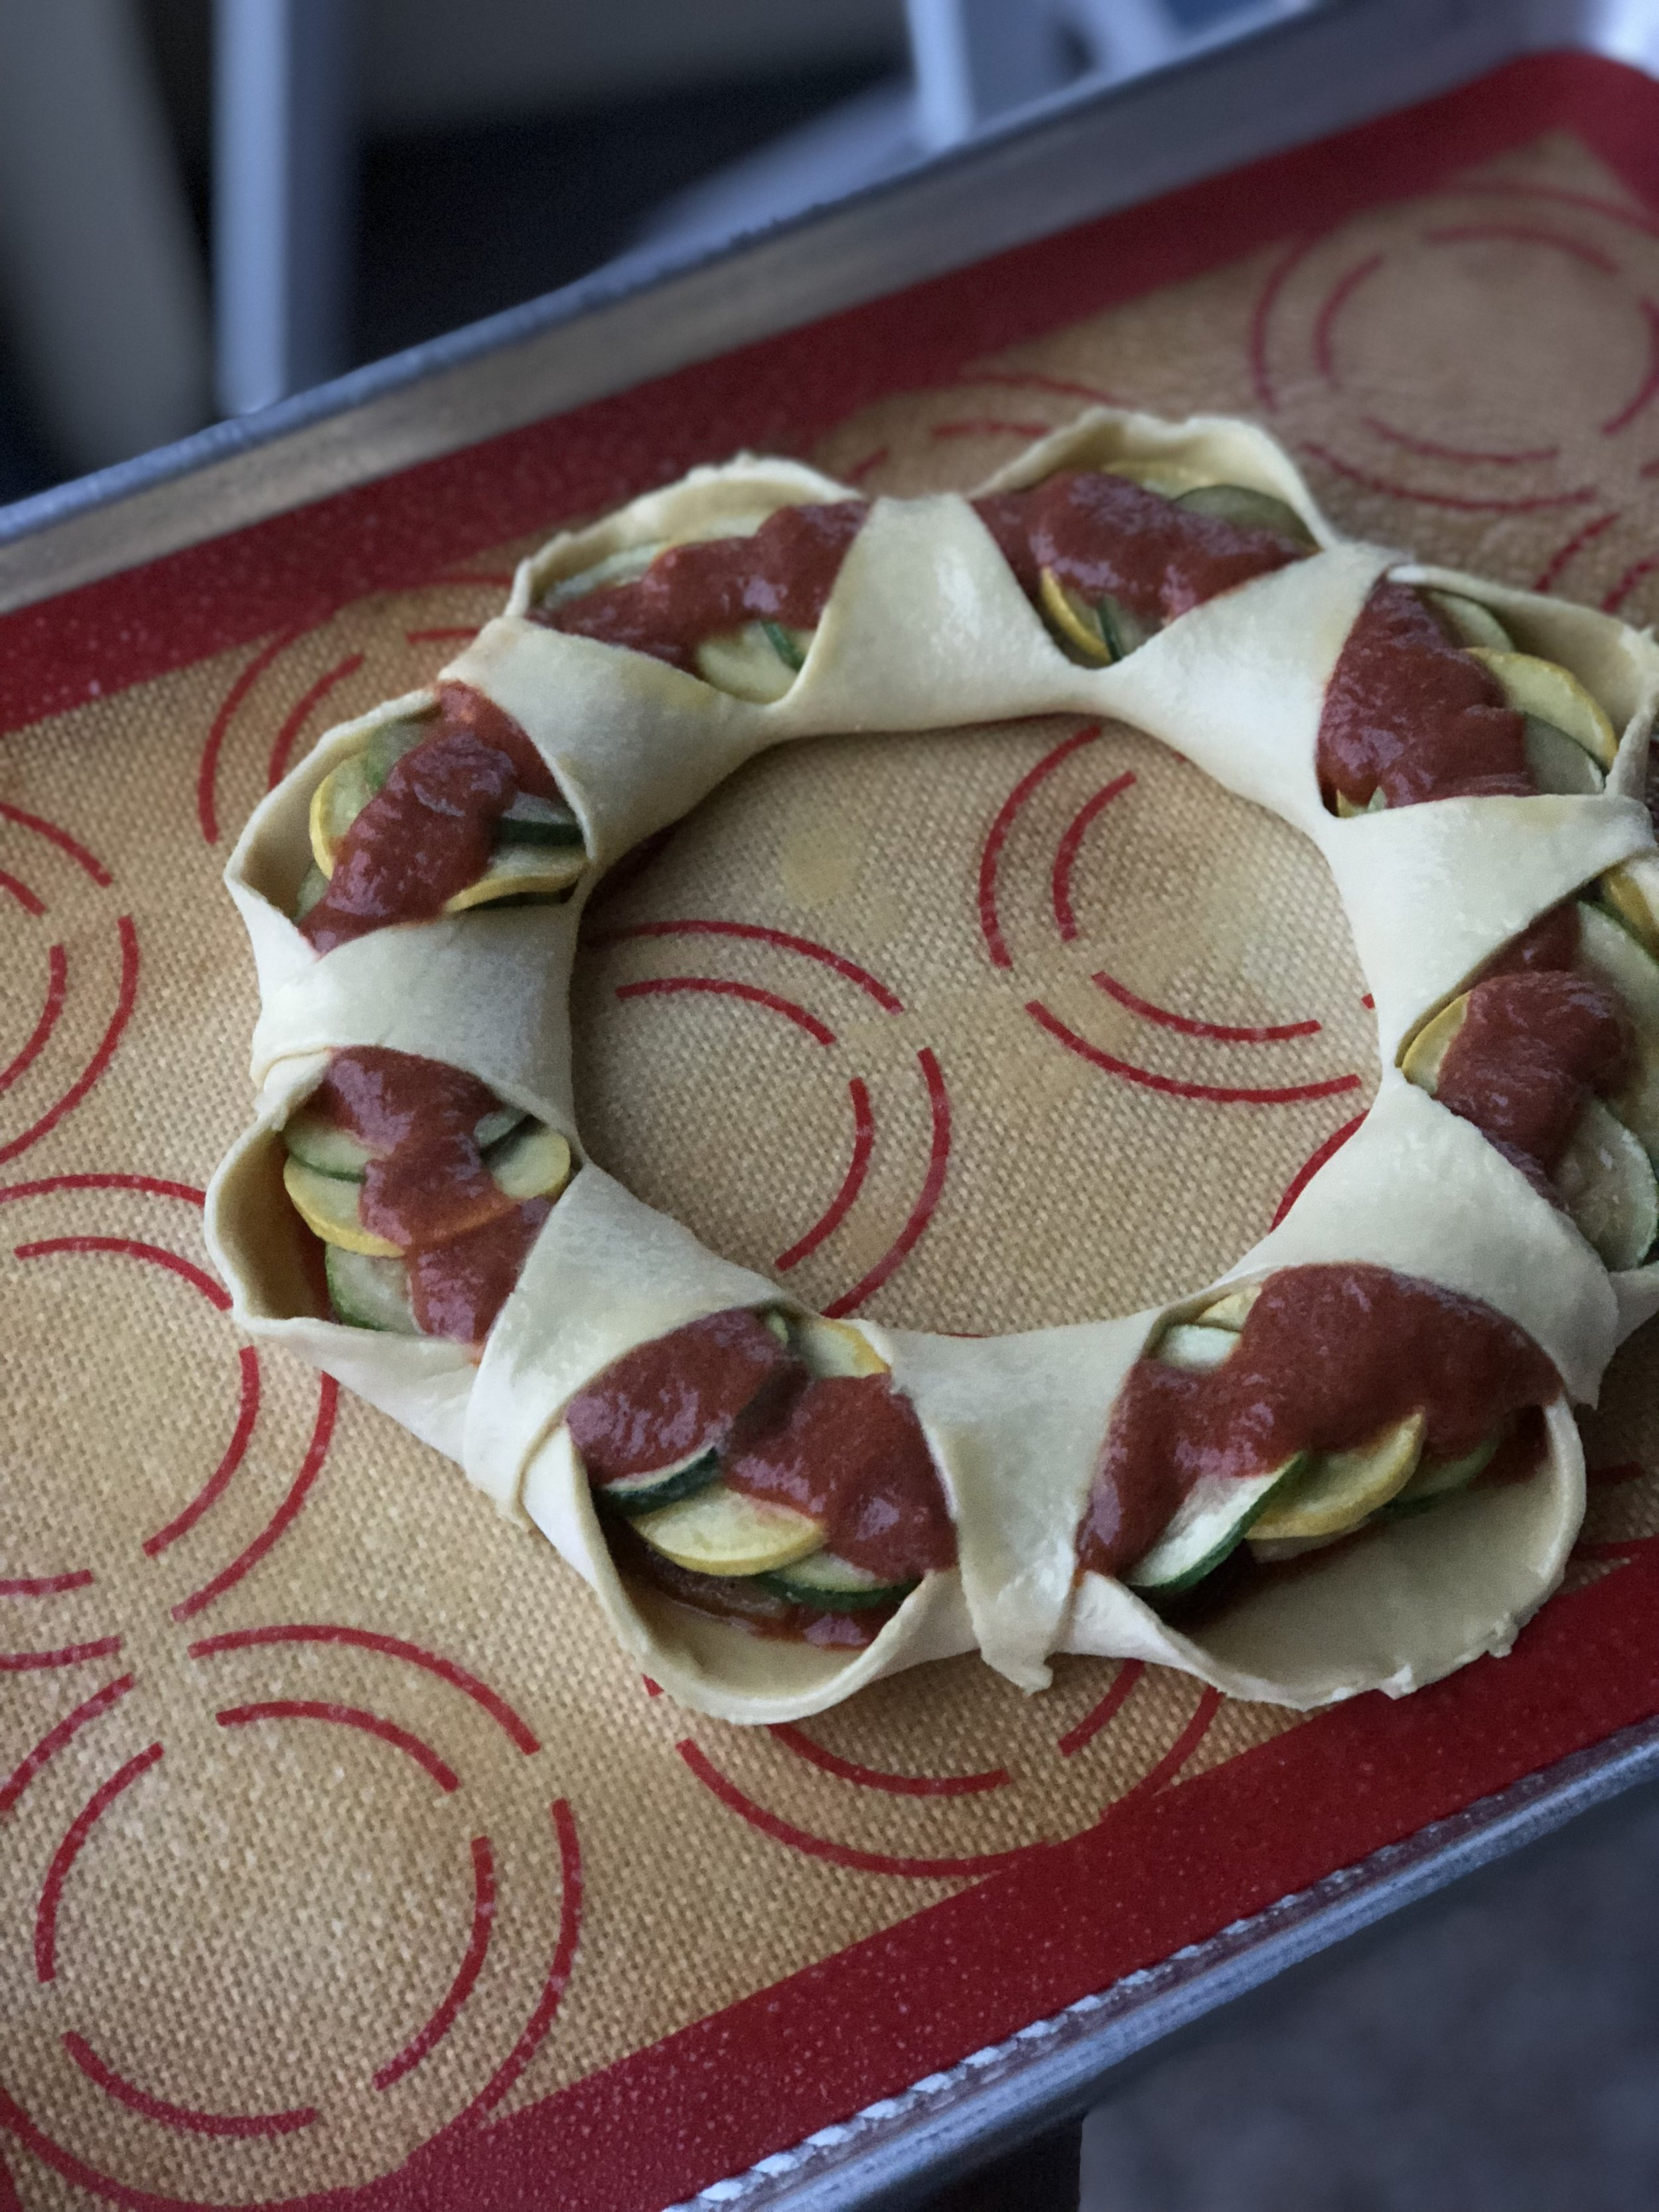 Unbaked wreath! Ready to chill and then pop into the oven.